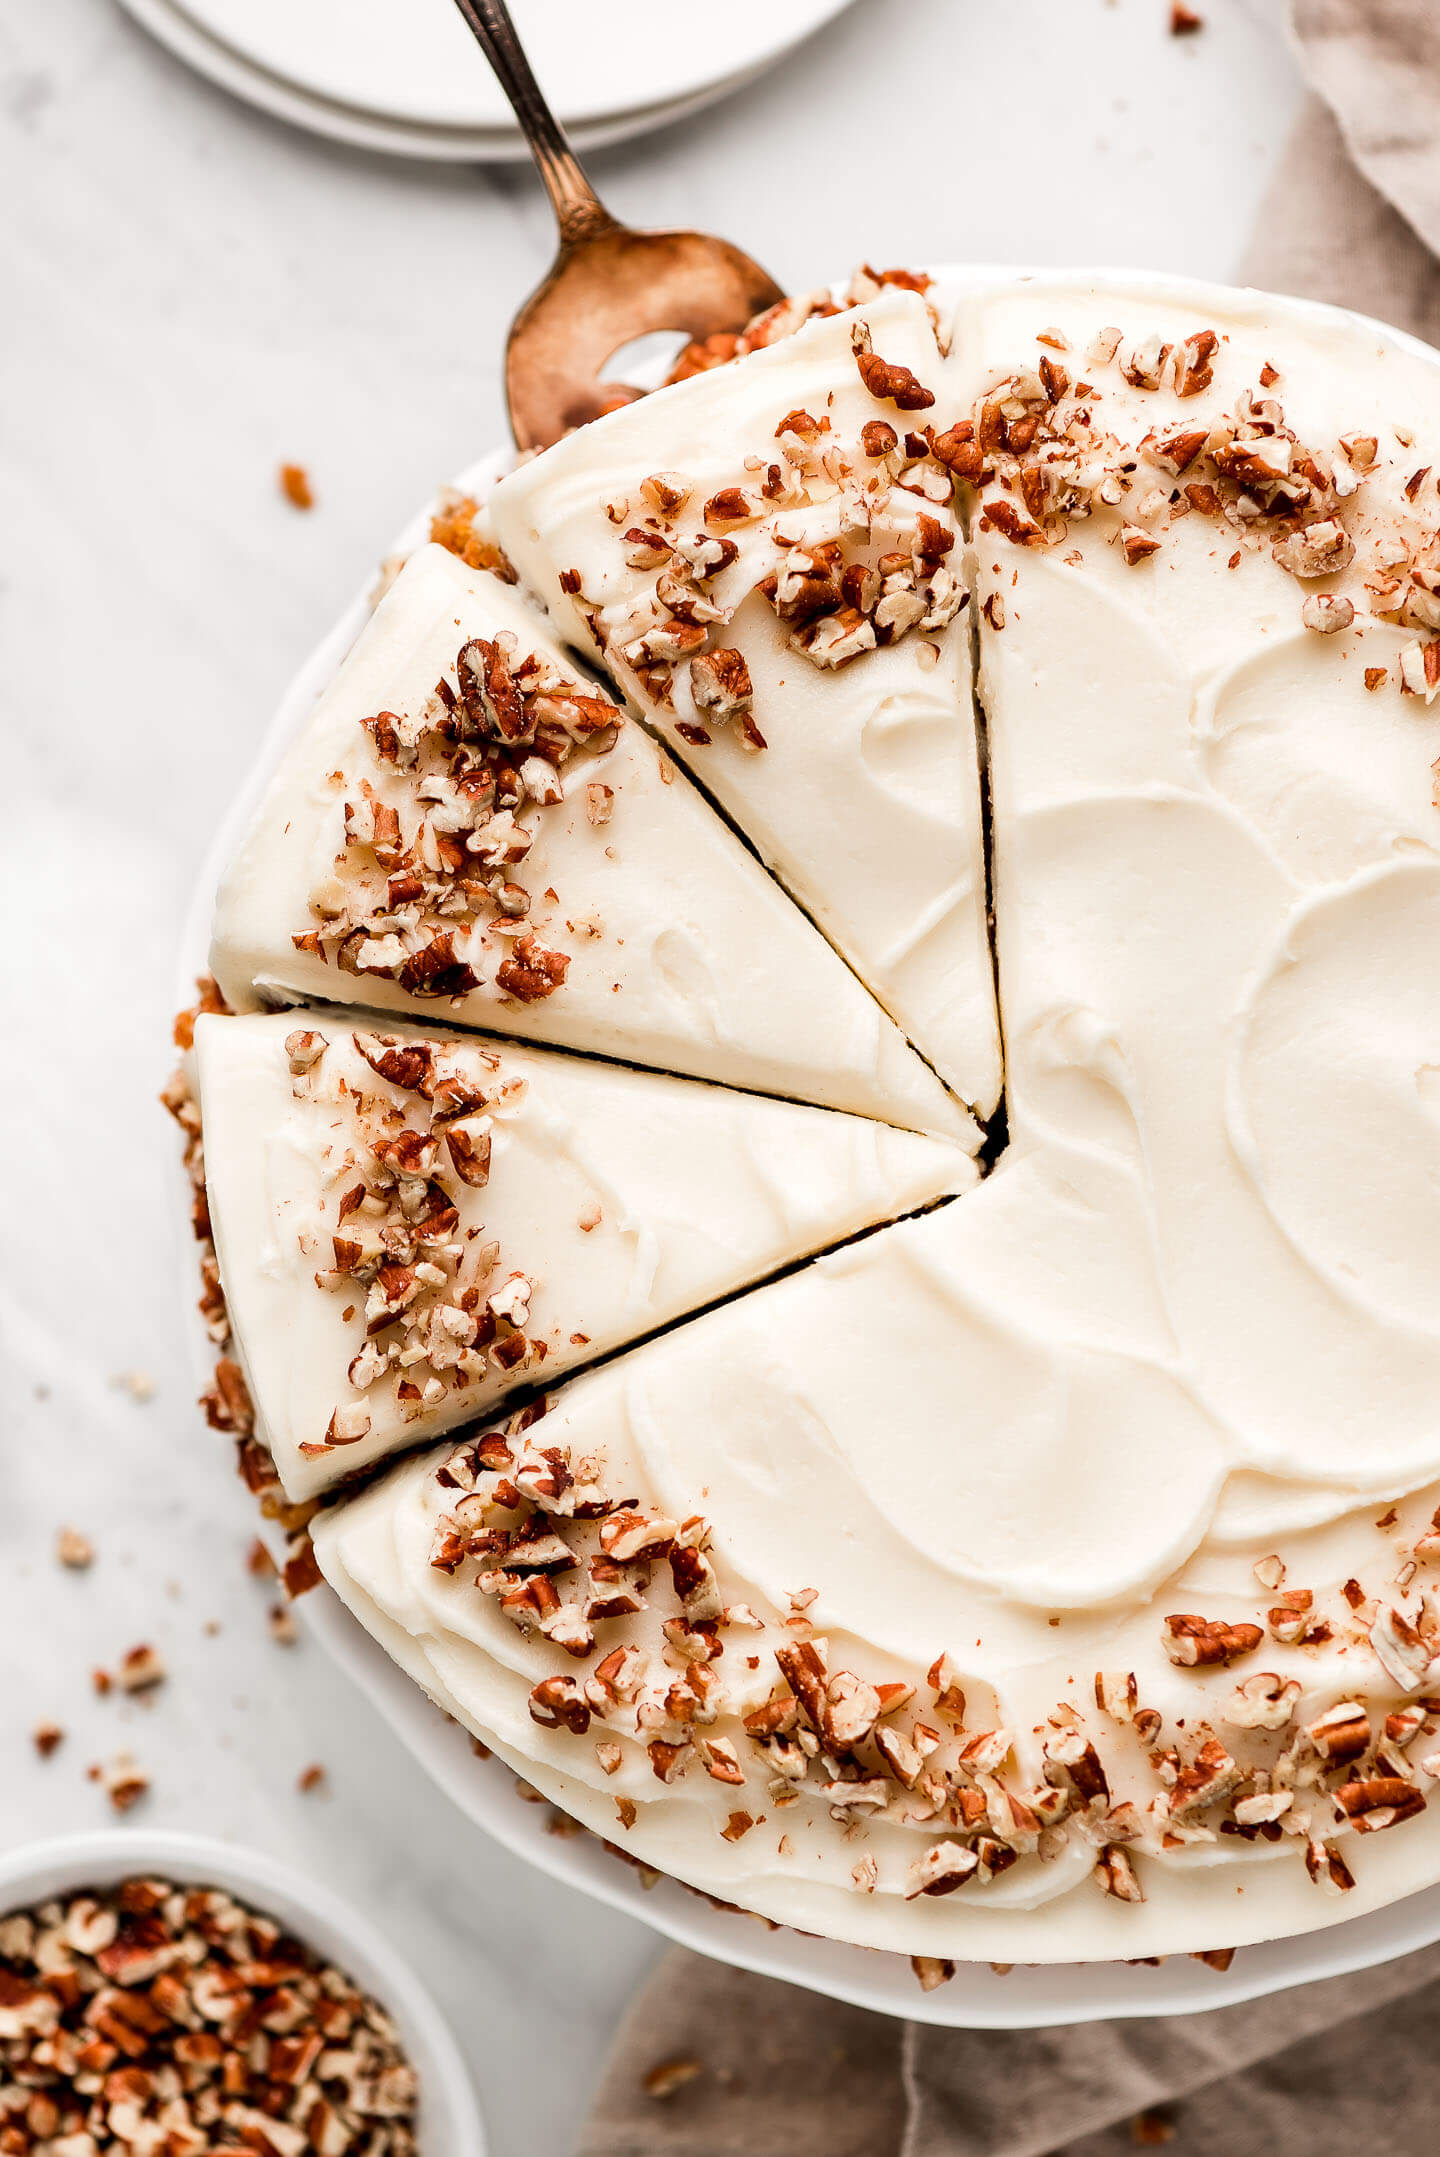 Top view of a sliced Carrot Cake frosted with cream cheese buttercream frosting and garnished with chopped toasted pecans.